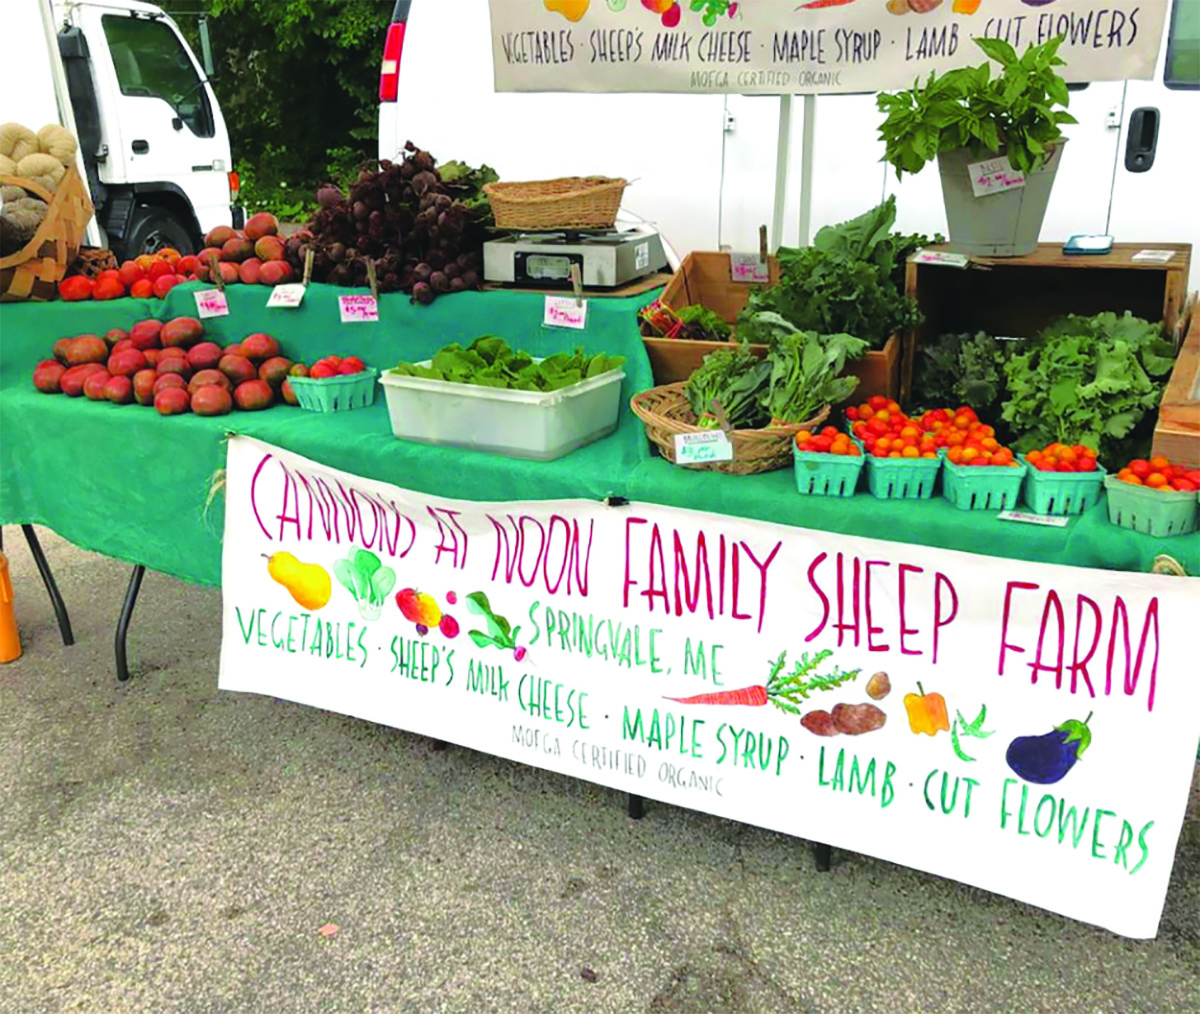 Kennebunk Farmers' Market sees room for growth | Journal Tribune